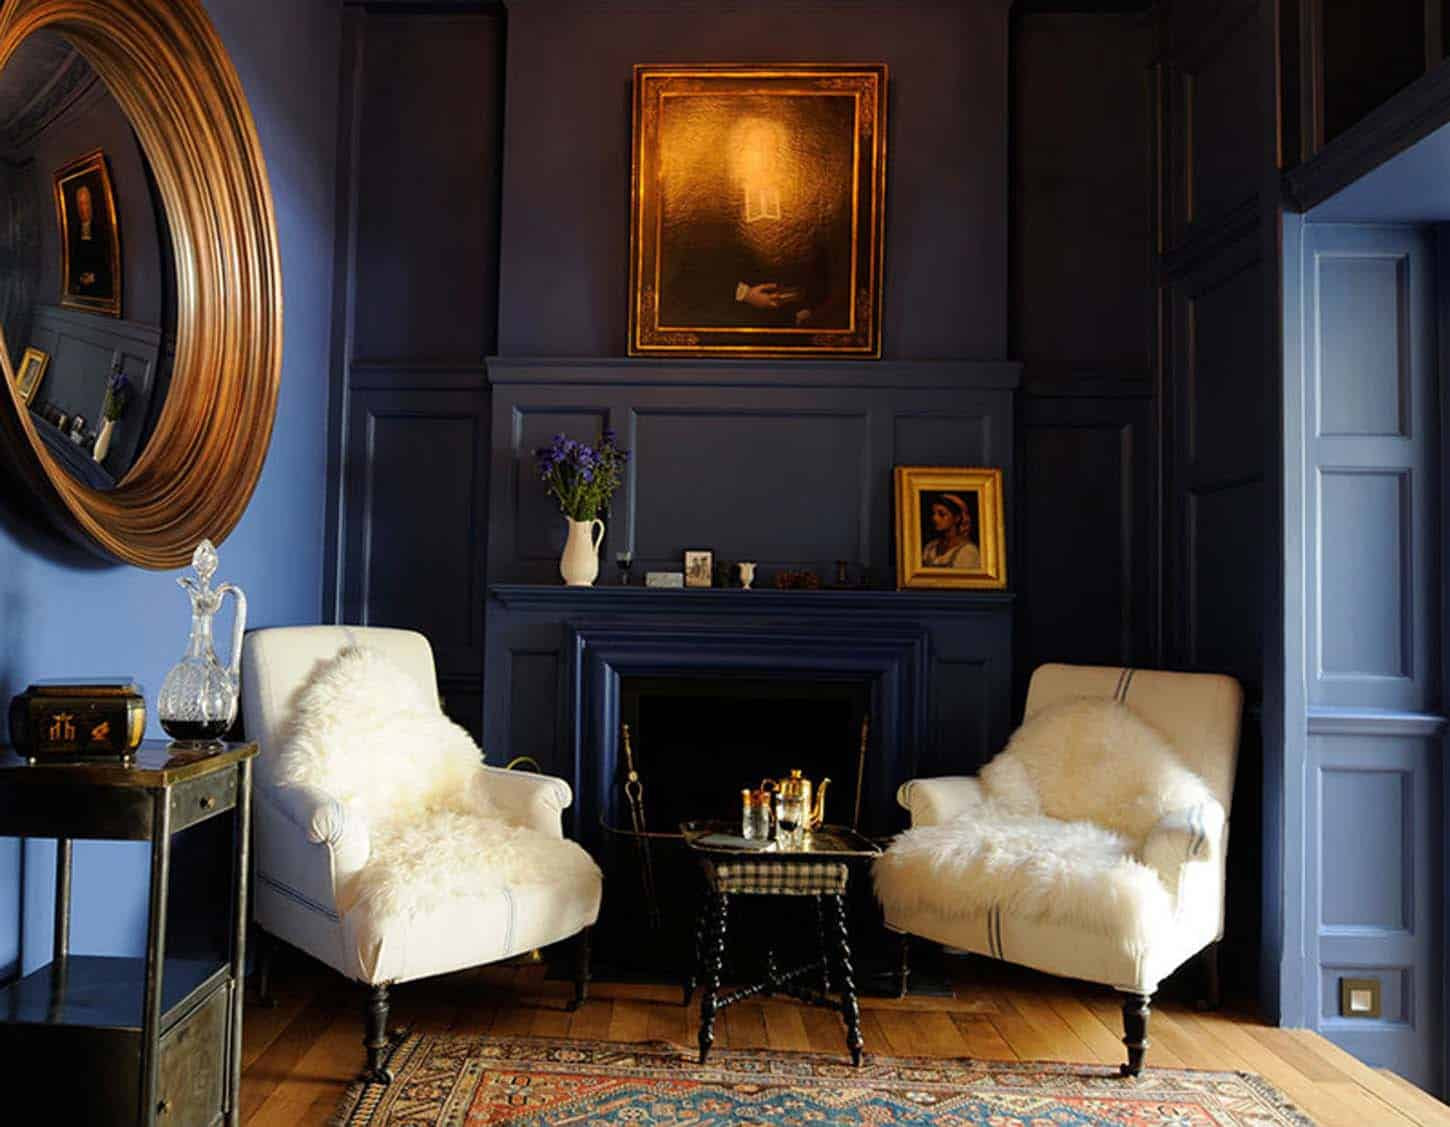 Moody Blue and Gold Interiors | Interior Design Trends ...